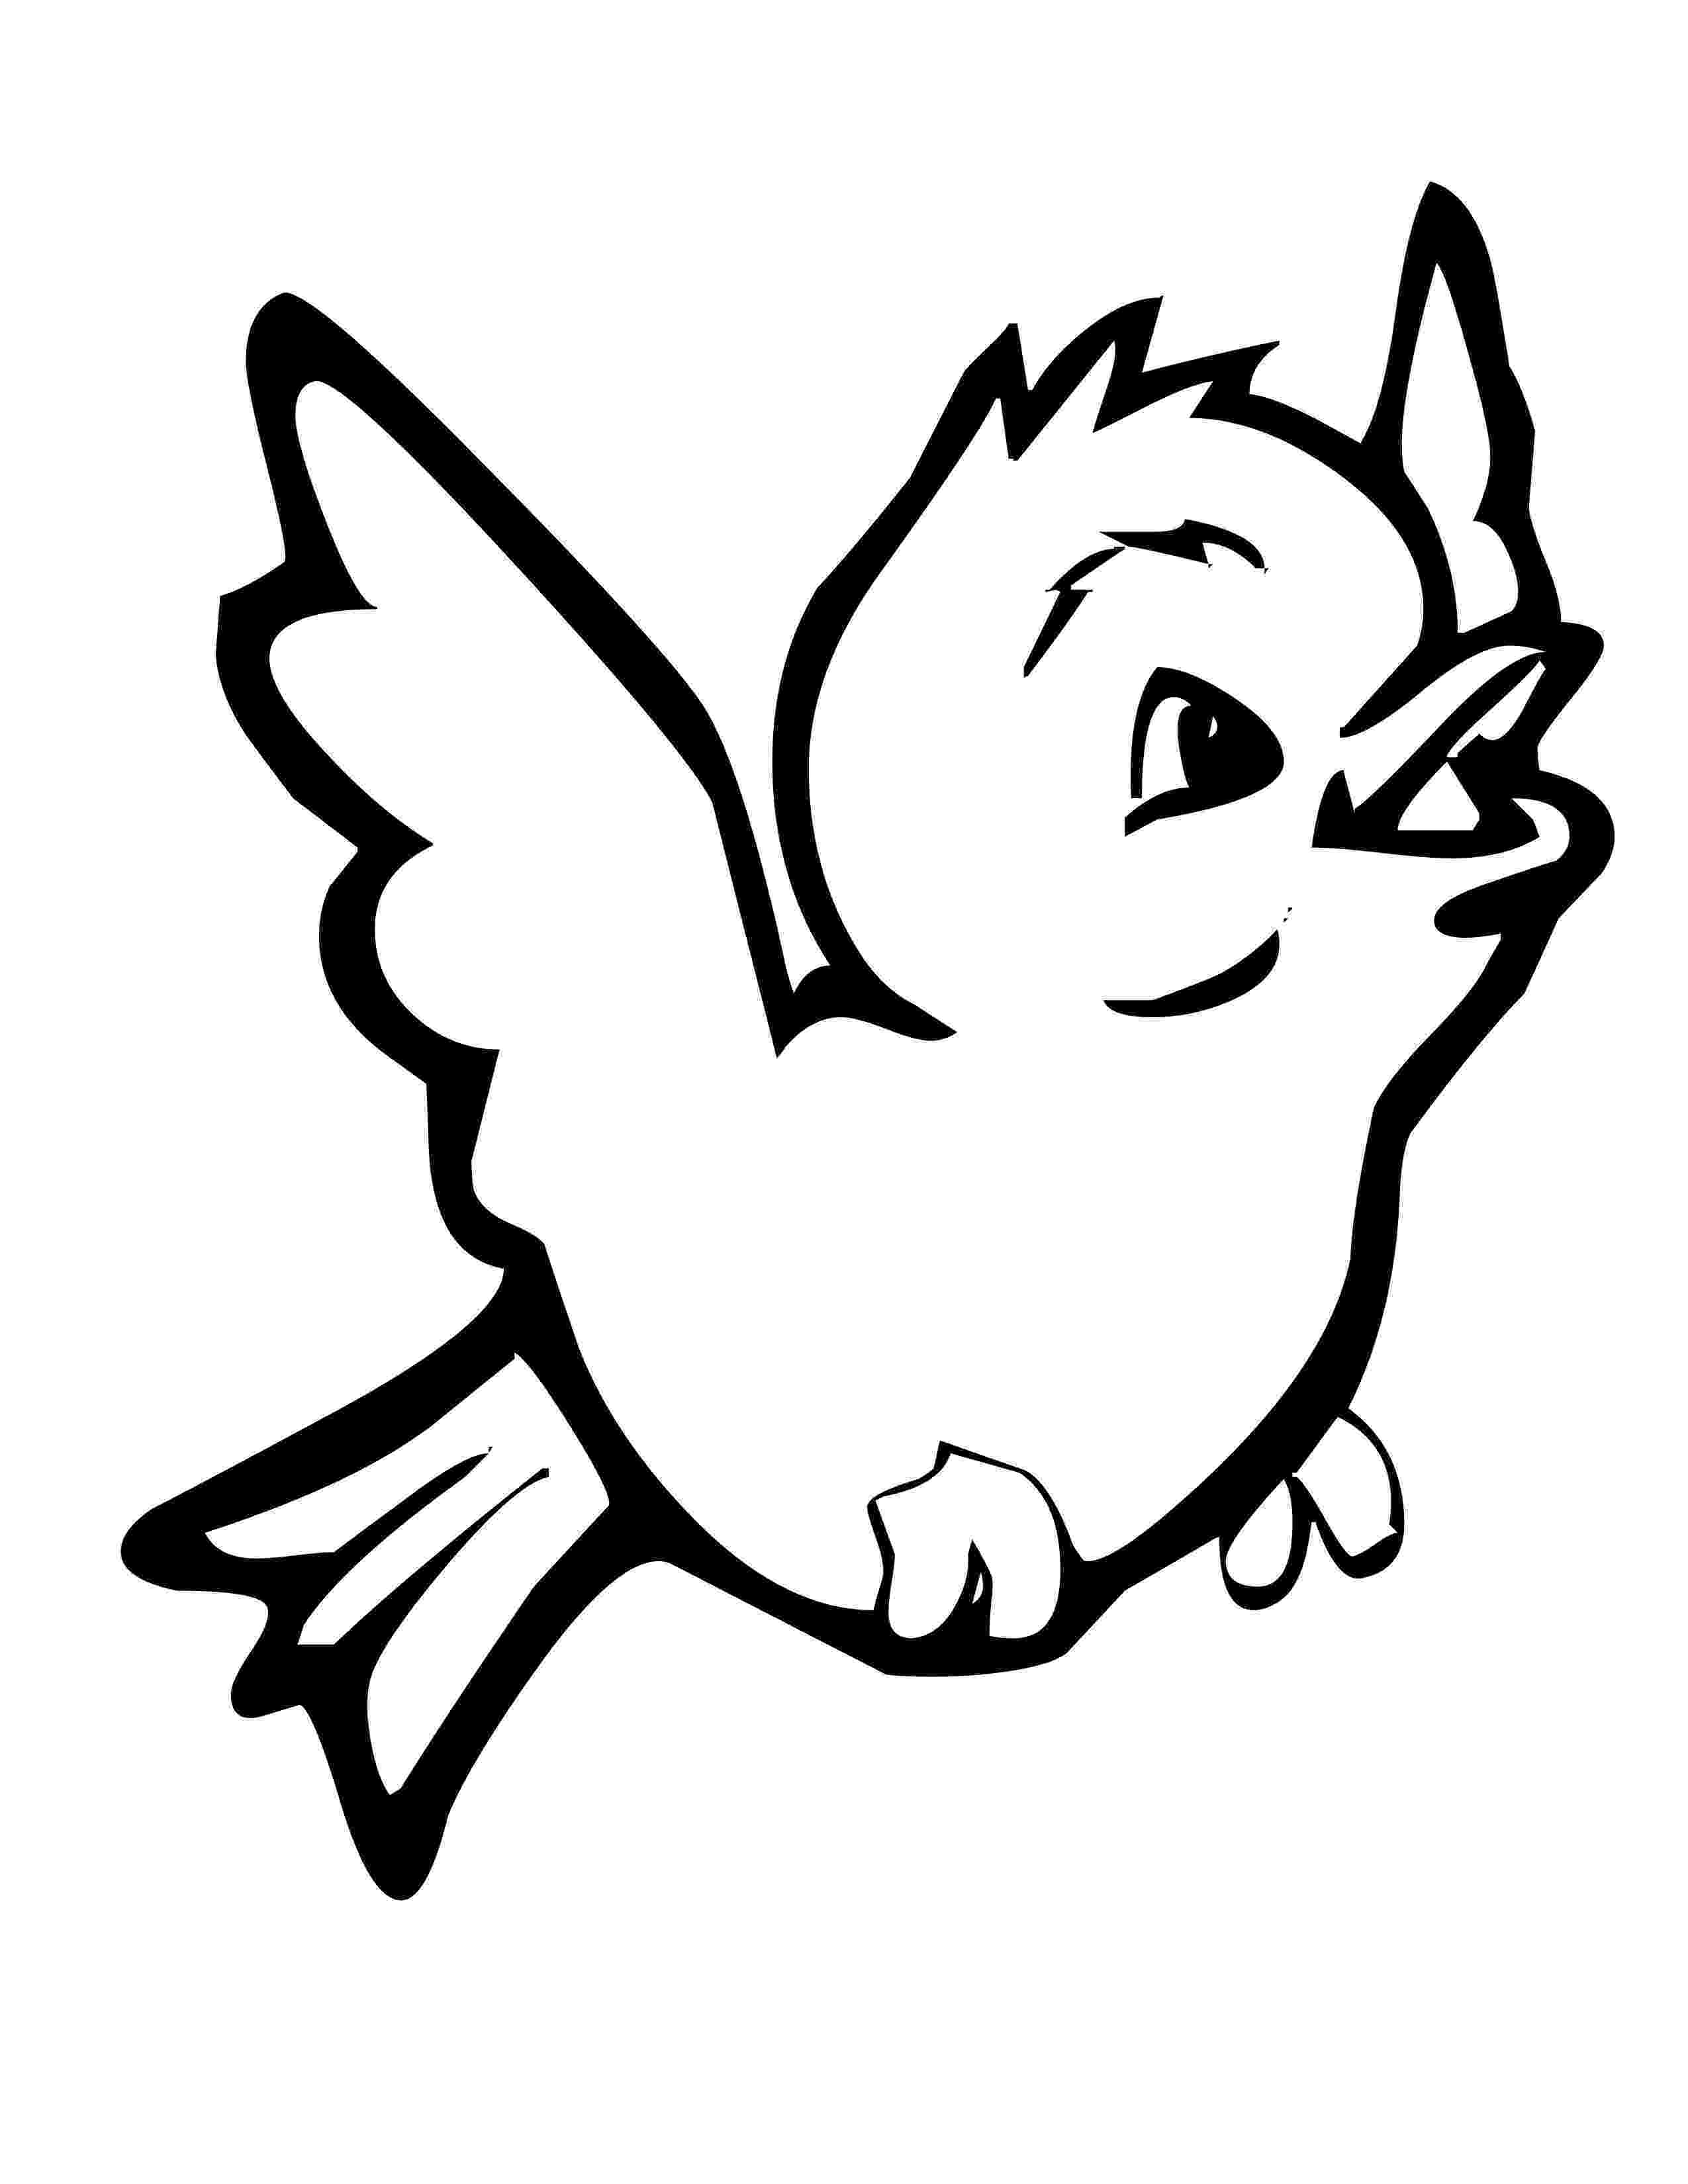 pictures of birds to colour peacock coloring pages for kids pictures birds of colour to